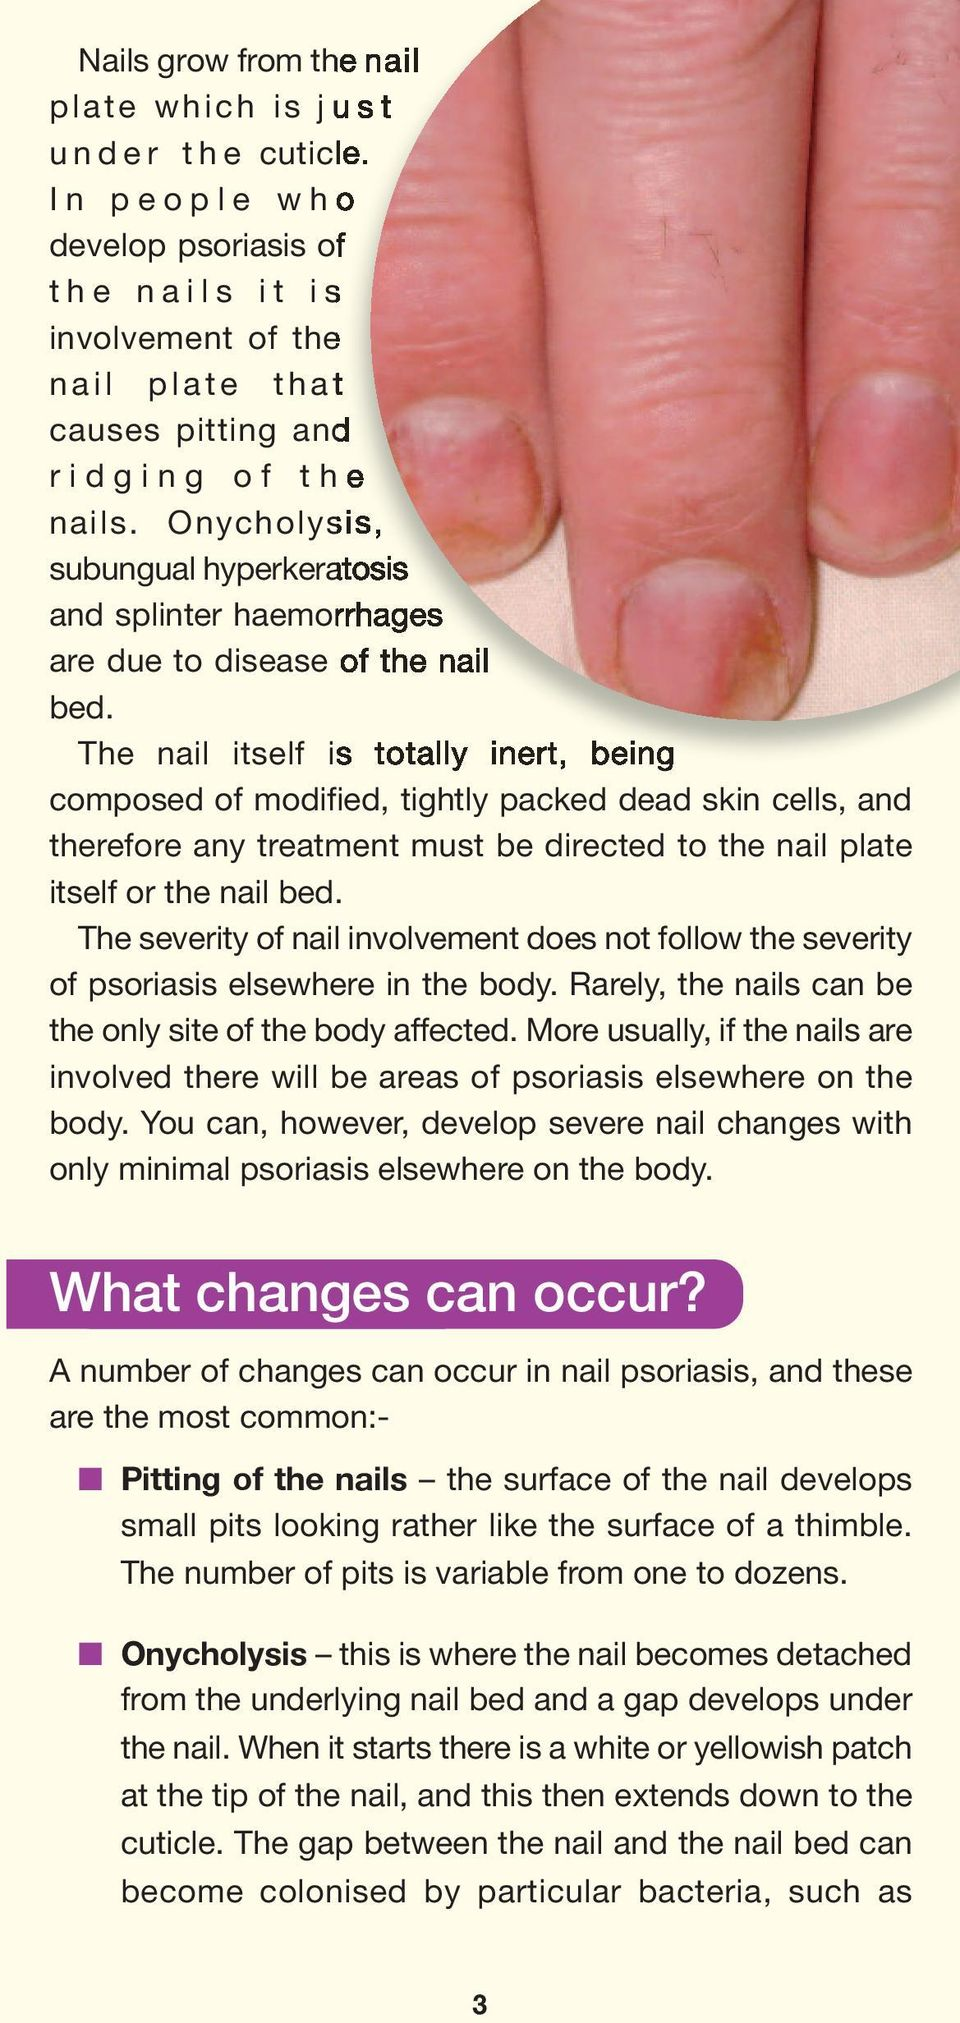 Onycholysis, subungual hyperkeratosis and splinter haemorrhages are due to disease of the nail bed.